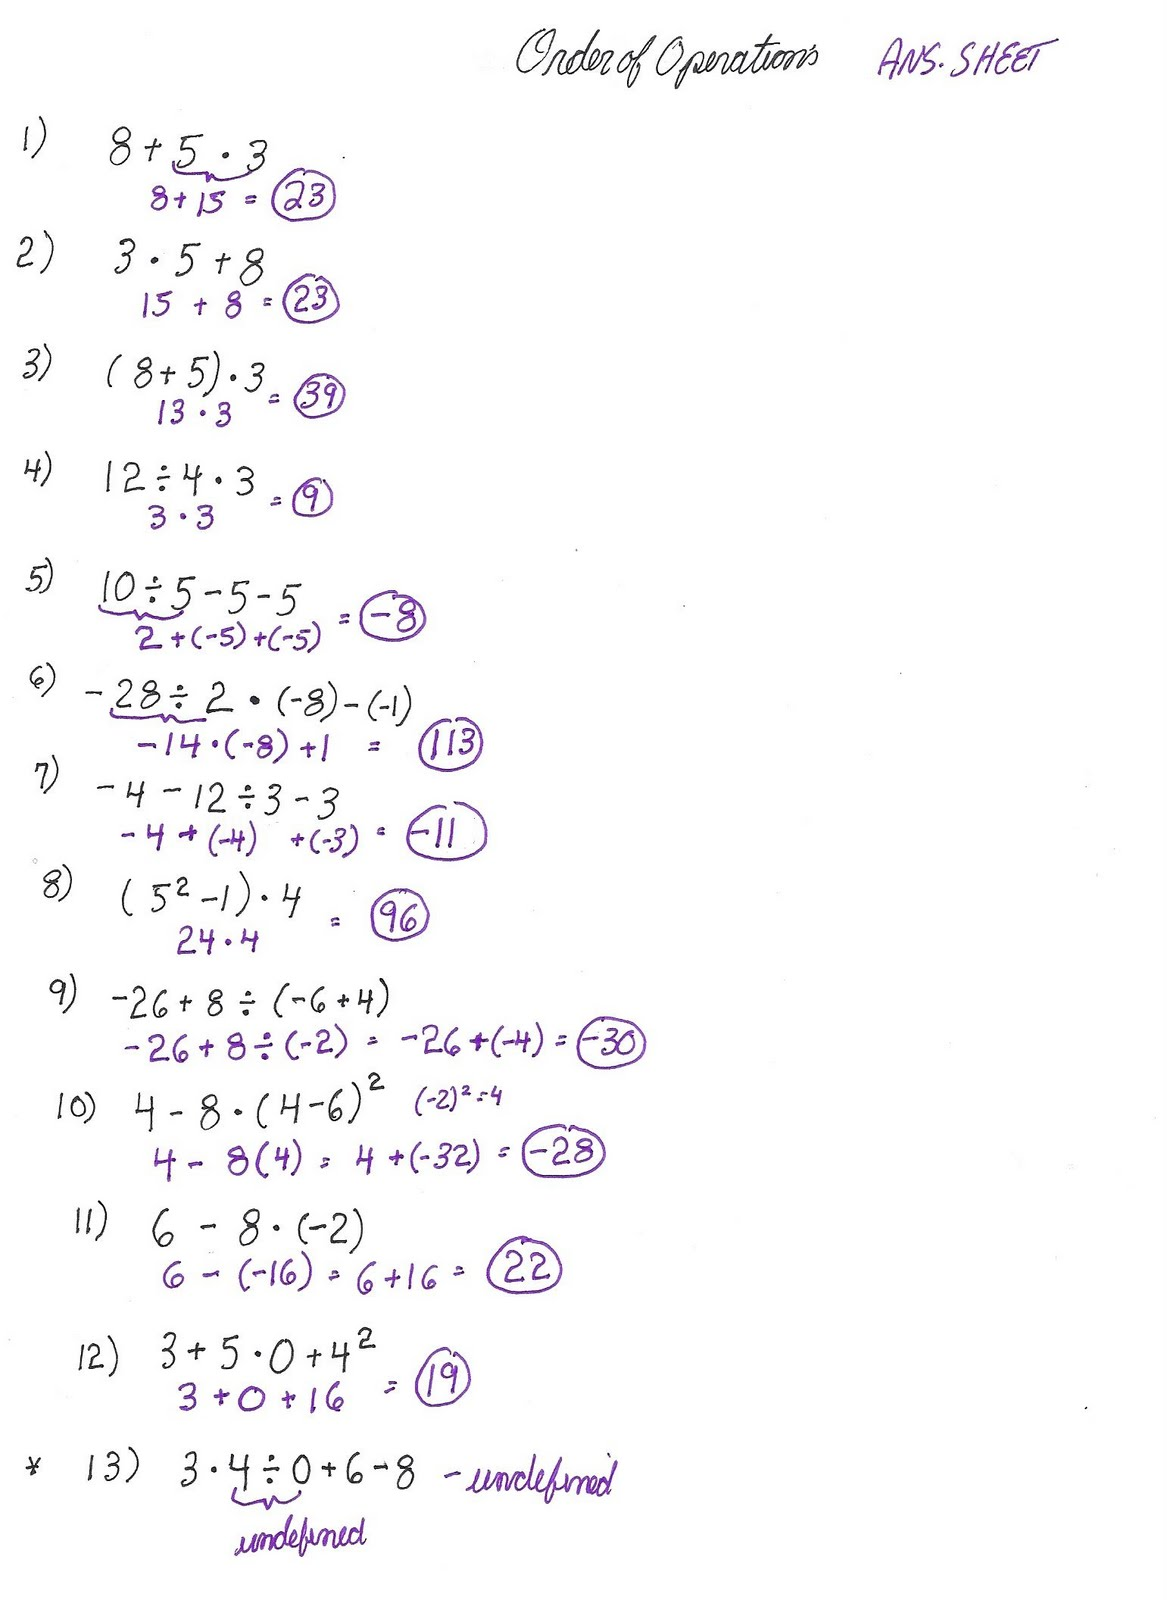 math worksheet : cobb adult ed math order of operations worksheet solutions : Free Math Worksheets Order Of Operations